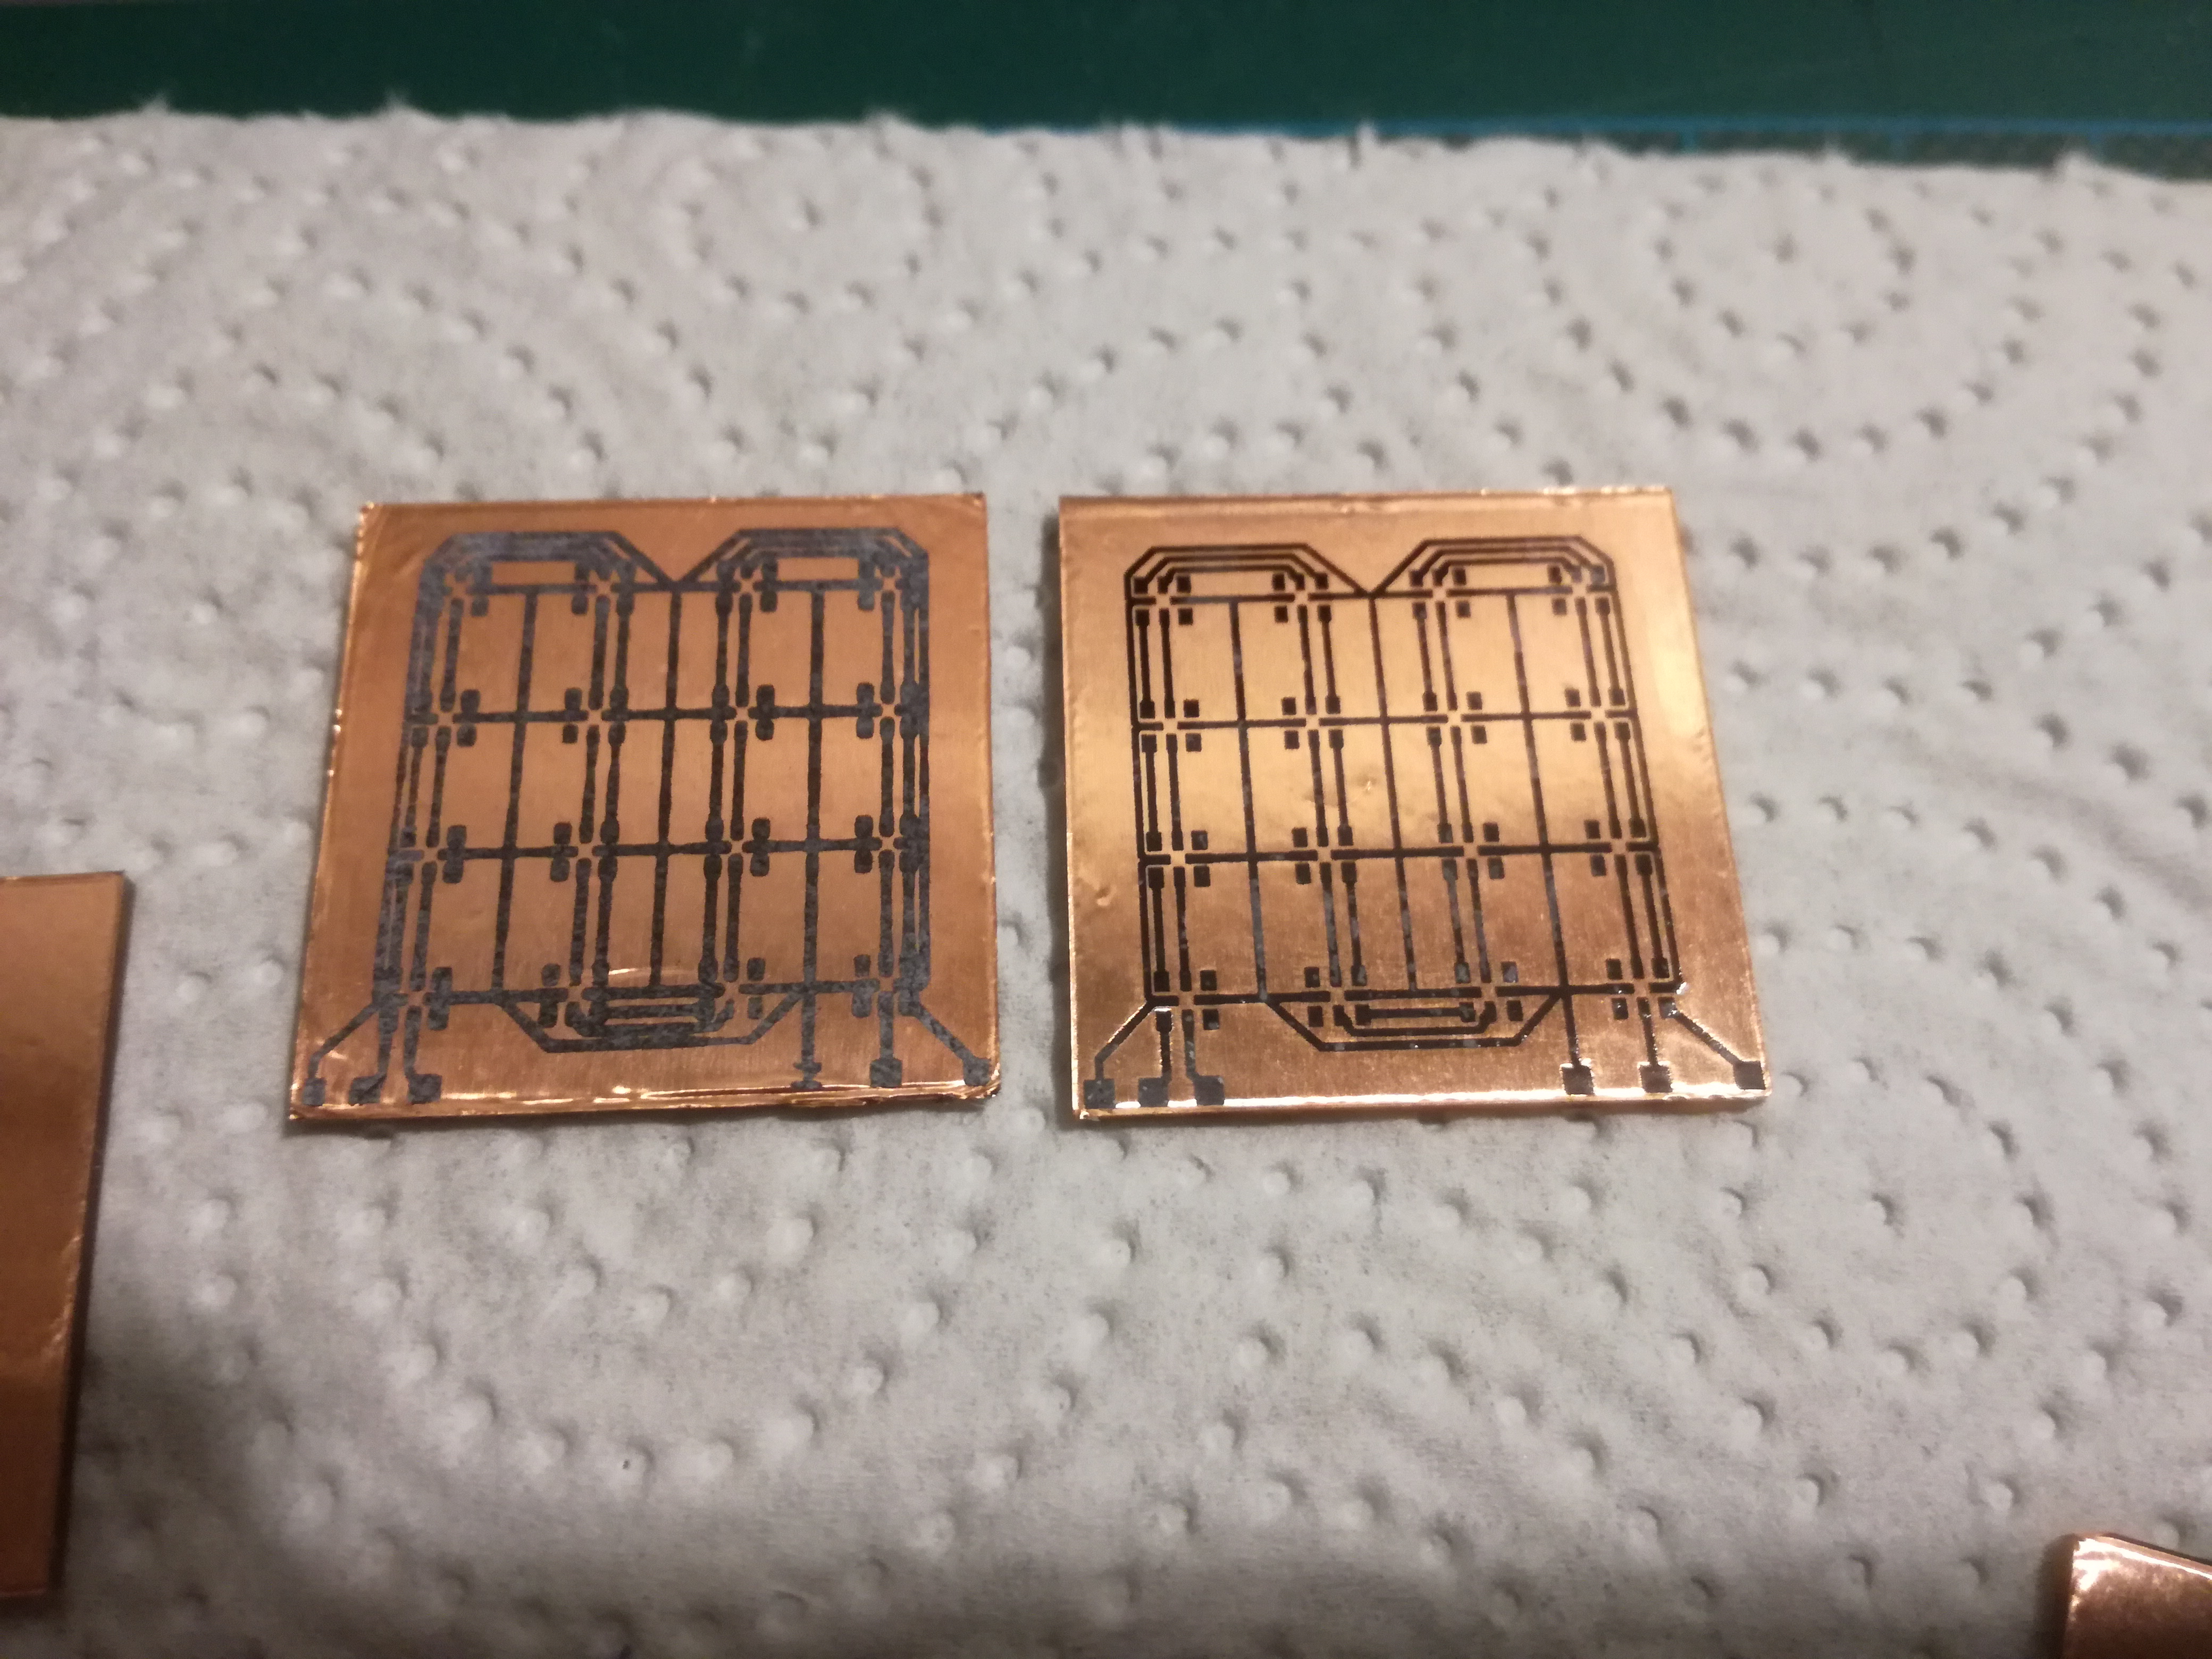 Picture of Transferring the PCB Layout